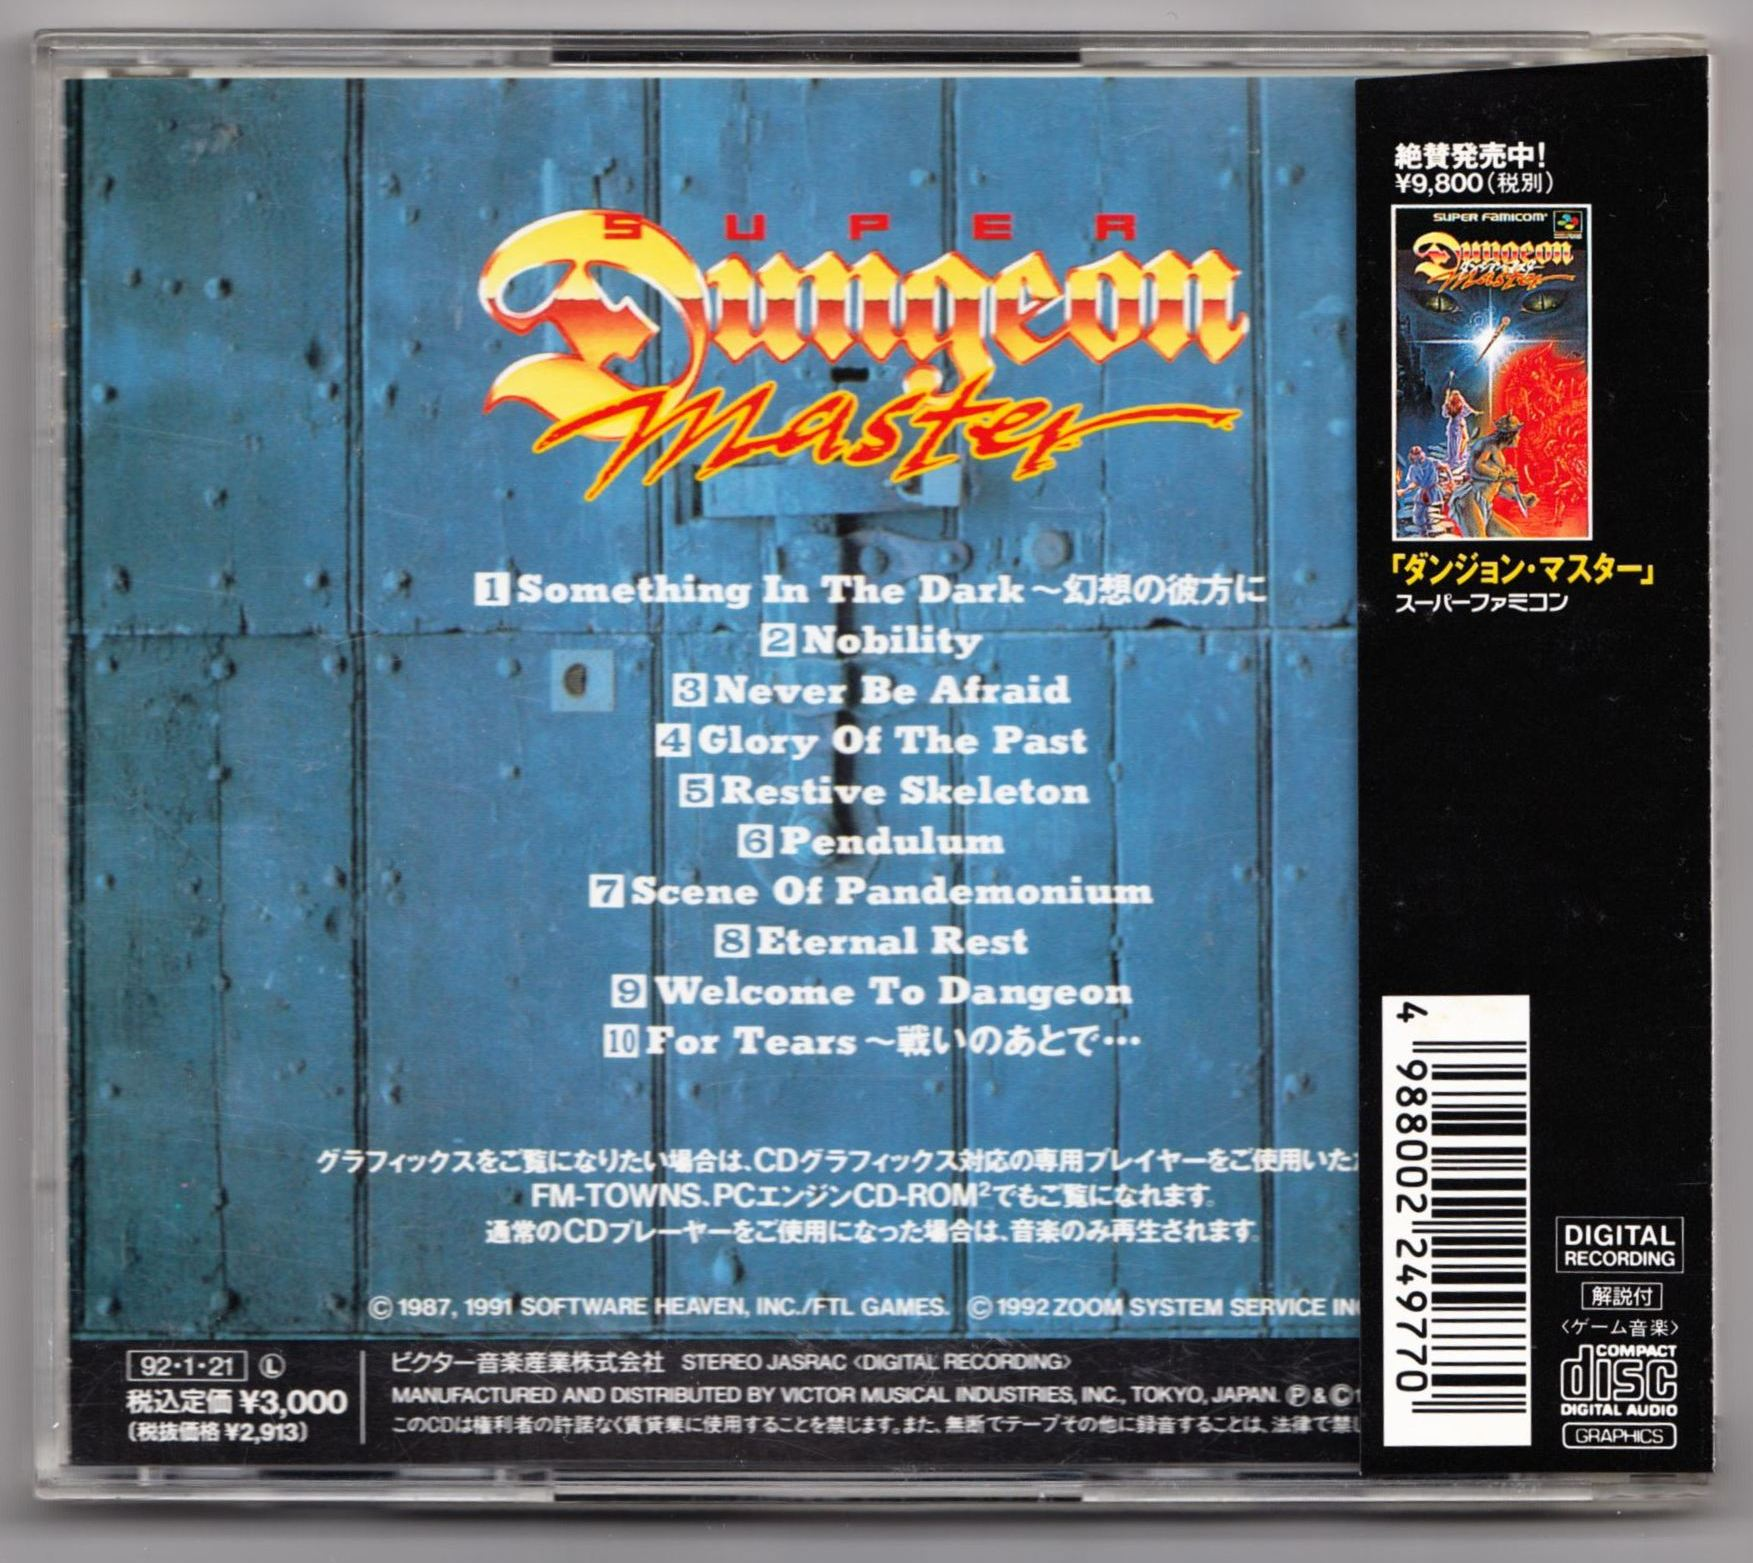 Audio CD - Super Dungeon Master - JP - Box - Back - Scan